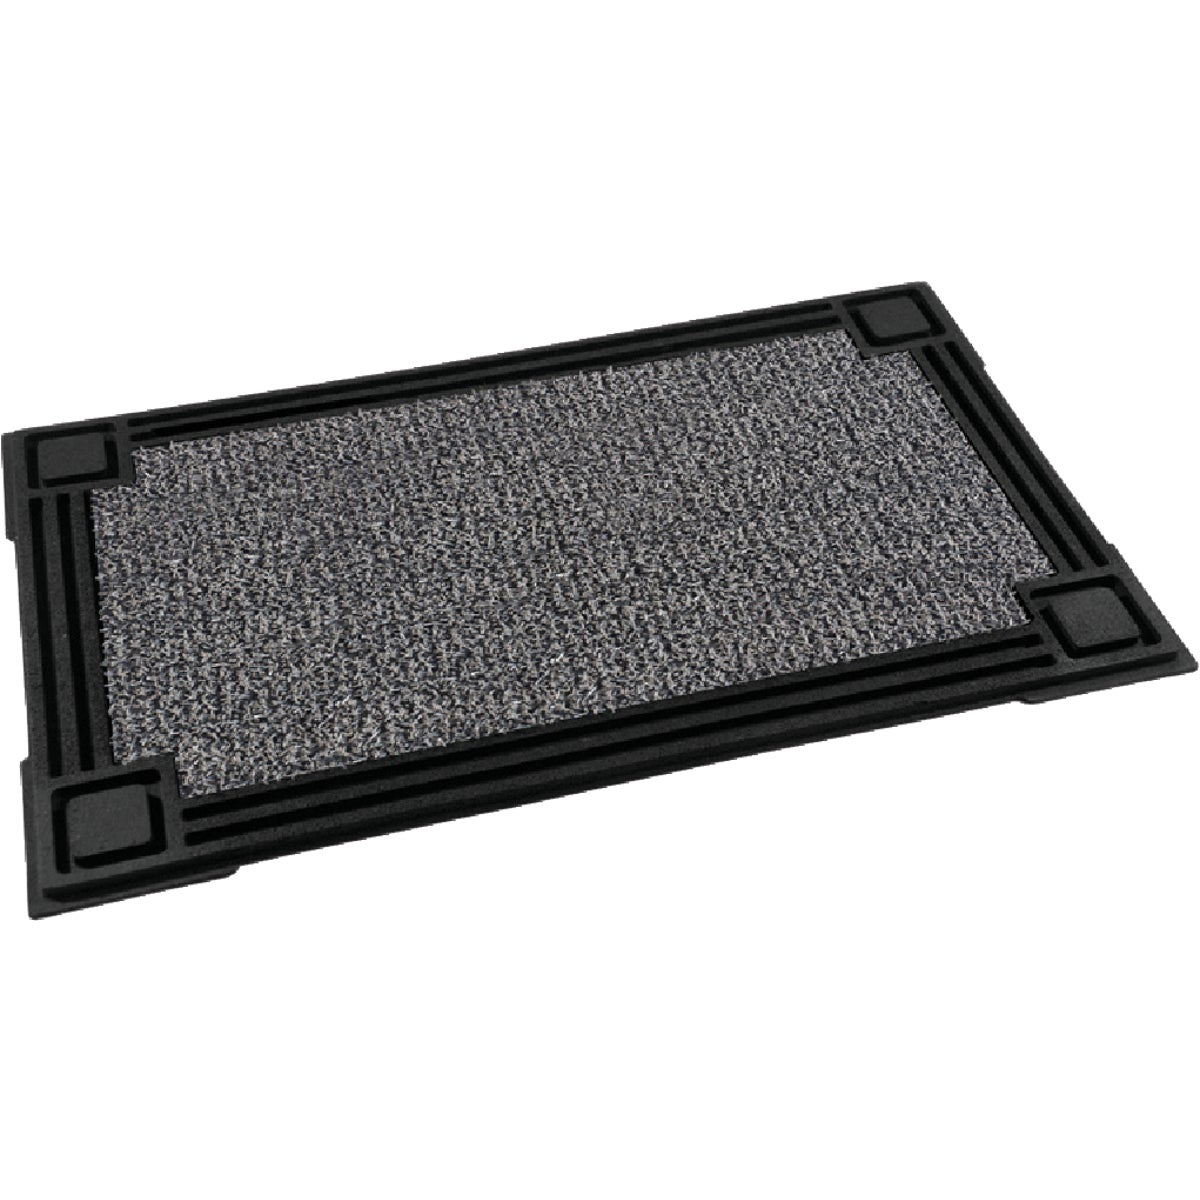 18X30 CIND CAP DOOR MAT - 10321520 by Grassworx